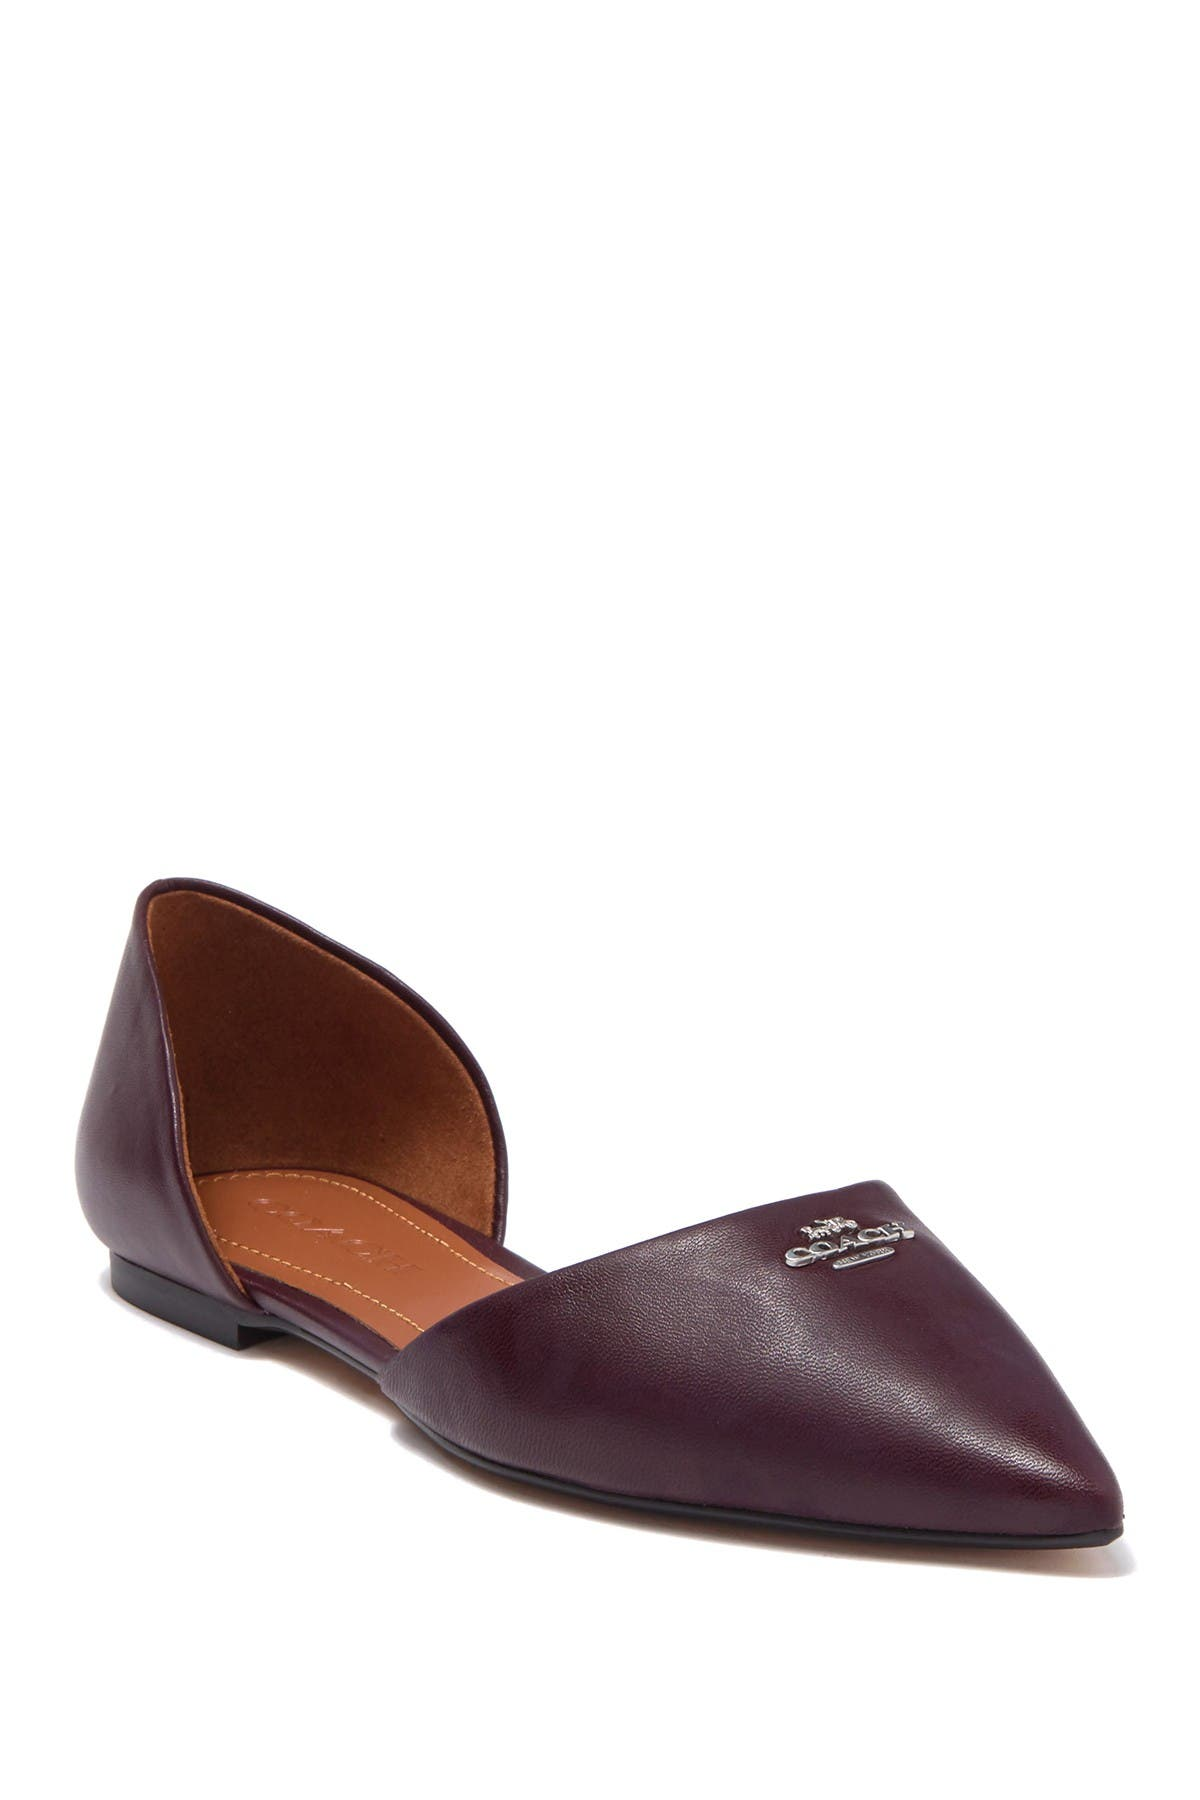 Coach   Pointed Toe Leather d'Orsay